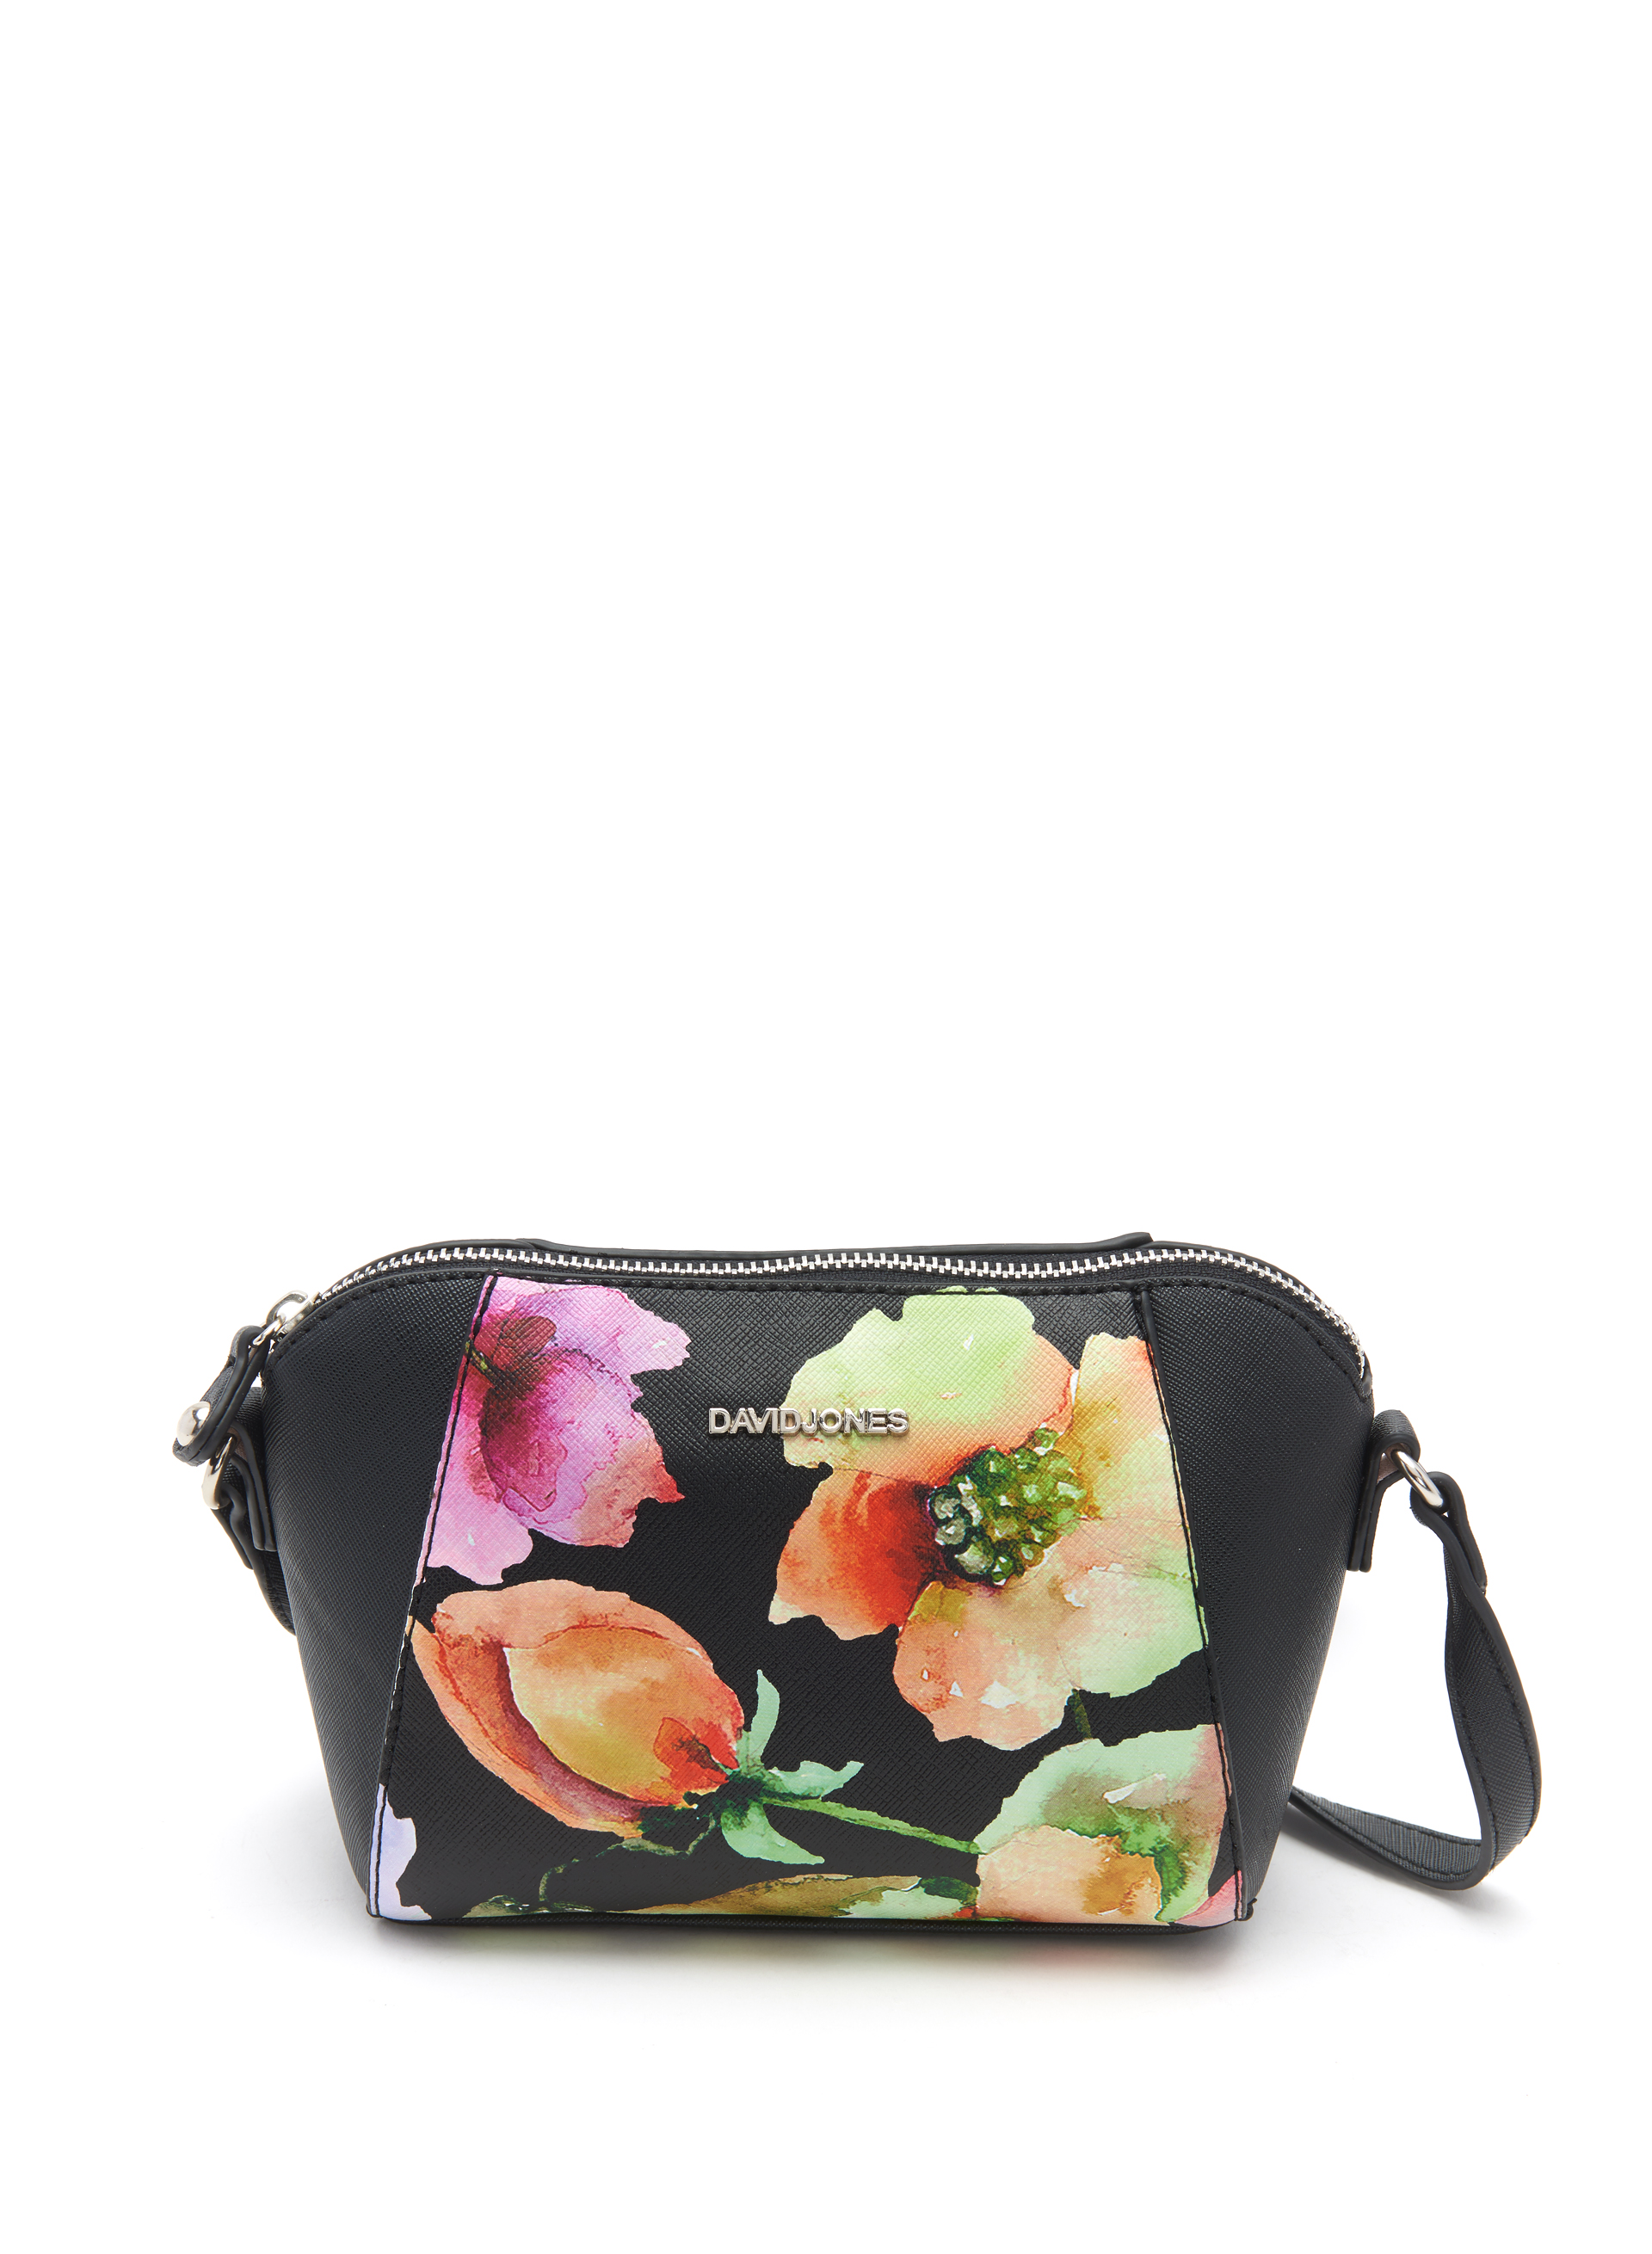 Floral Motif Crossbody Bag | FREE Shipping* | Laura